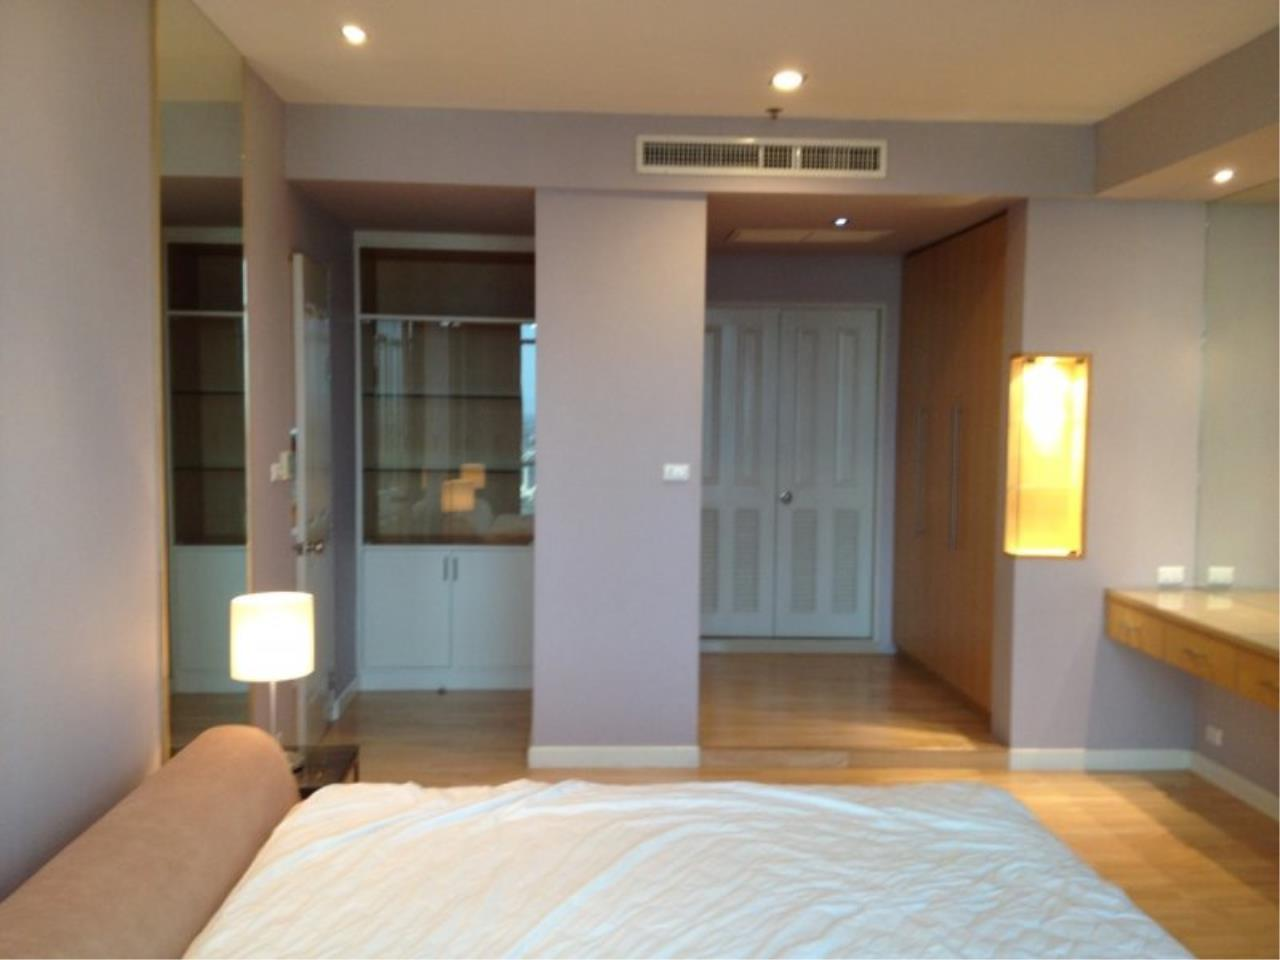 Piri Property Agency's 1 Bedroom in the Baan Sathorn Chaophraya building for rent on high floor 3